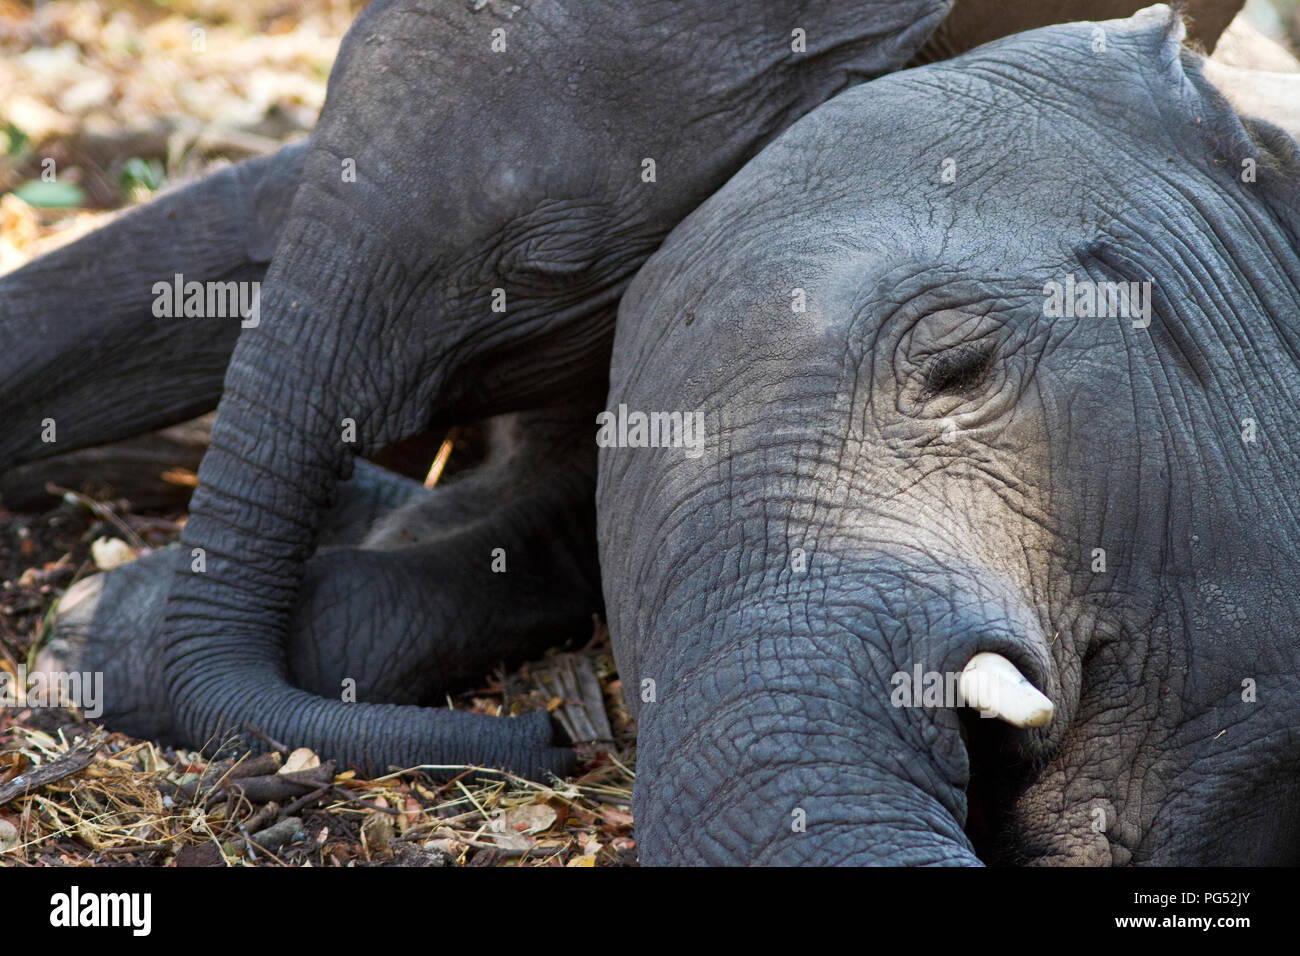 A pair of elephant calves take the chance to get some sleep as the breed herd rests during the heat of the day beneath a shady Tamarind tree. - Stock Image